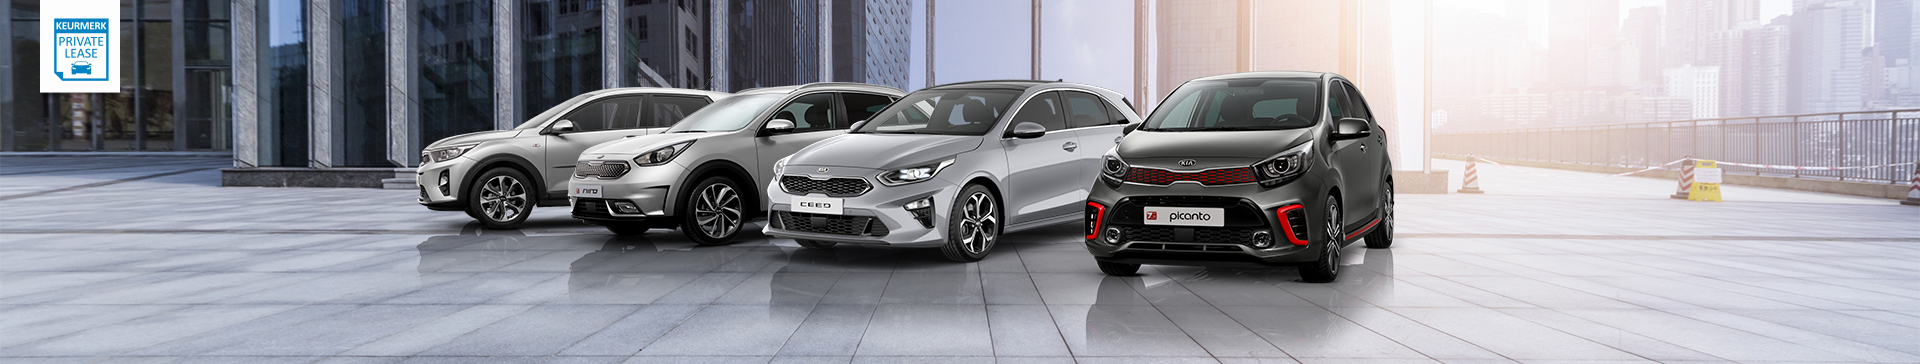 Kia Private Lease modellen